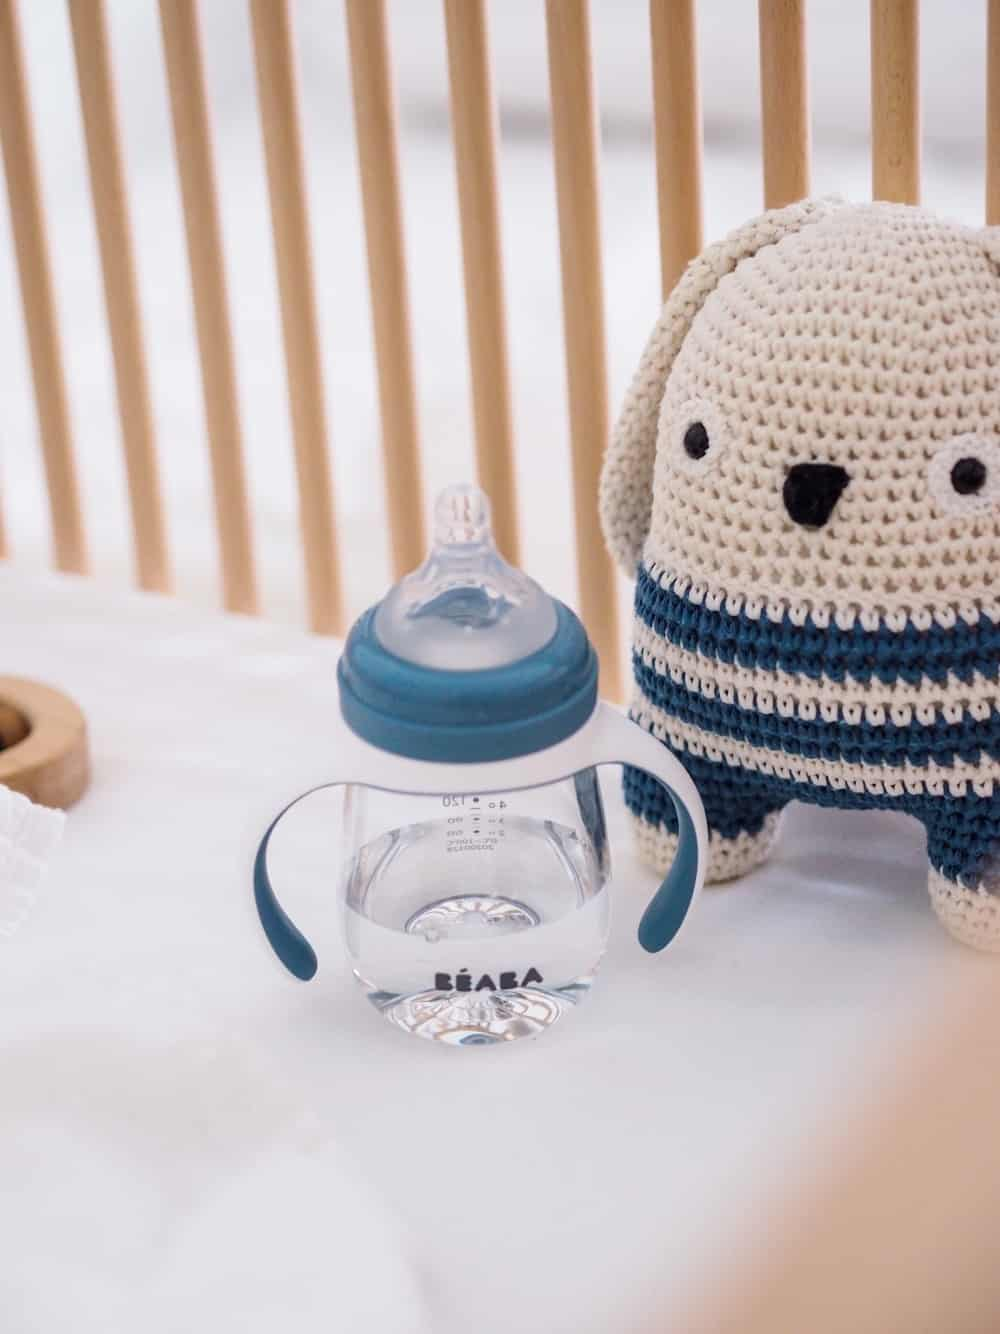 Beaba 2-in-1 Training Bottle In Crib